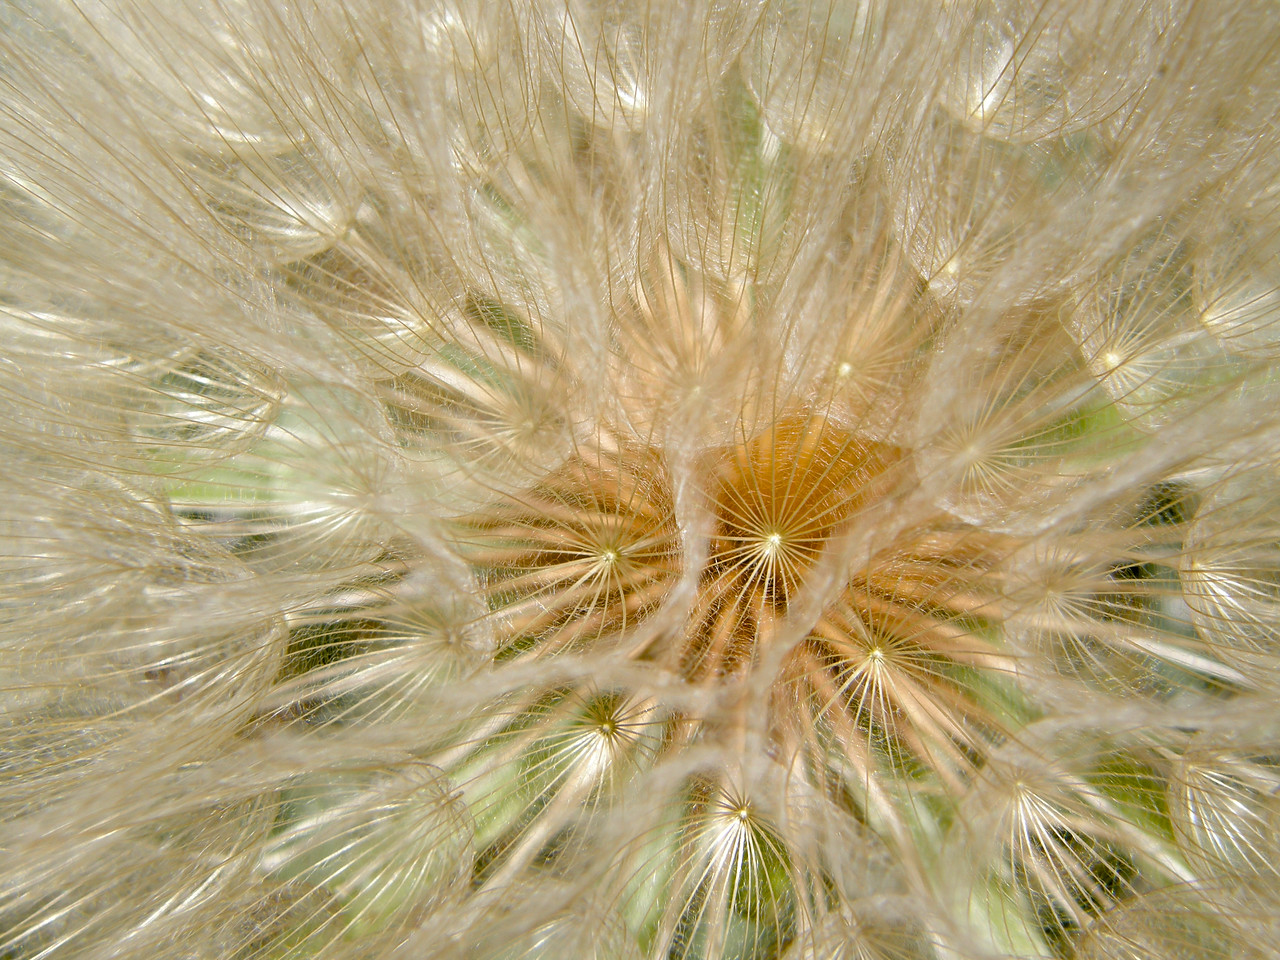 The dandelion-like seeds of a Yellow Salsify